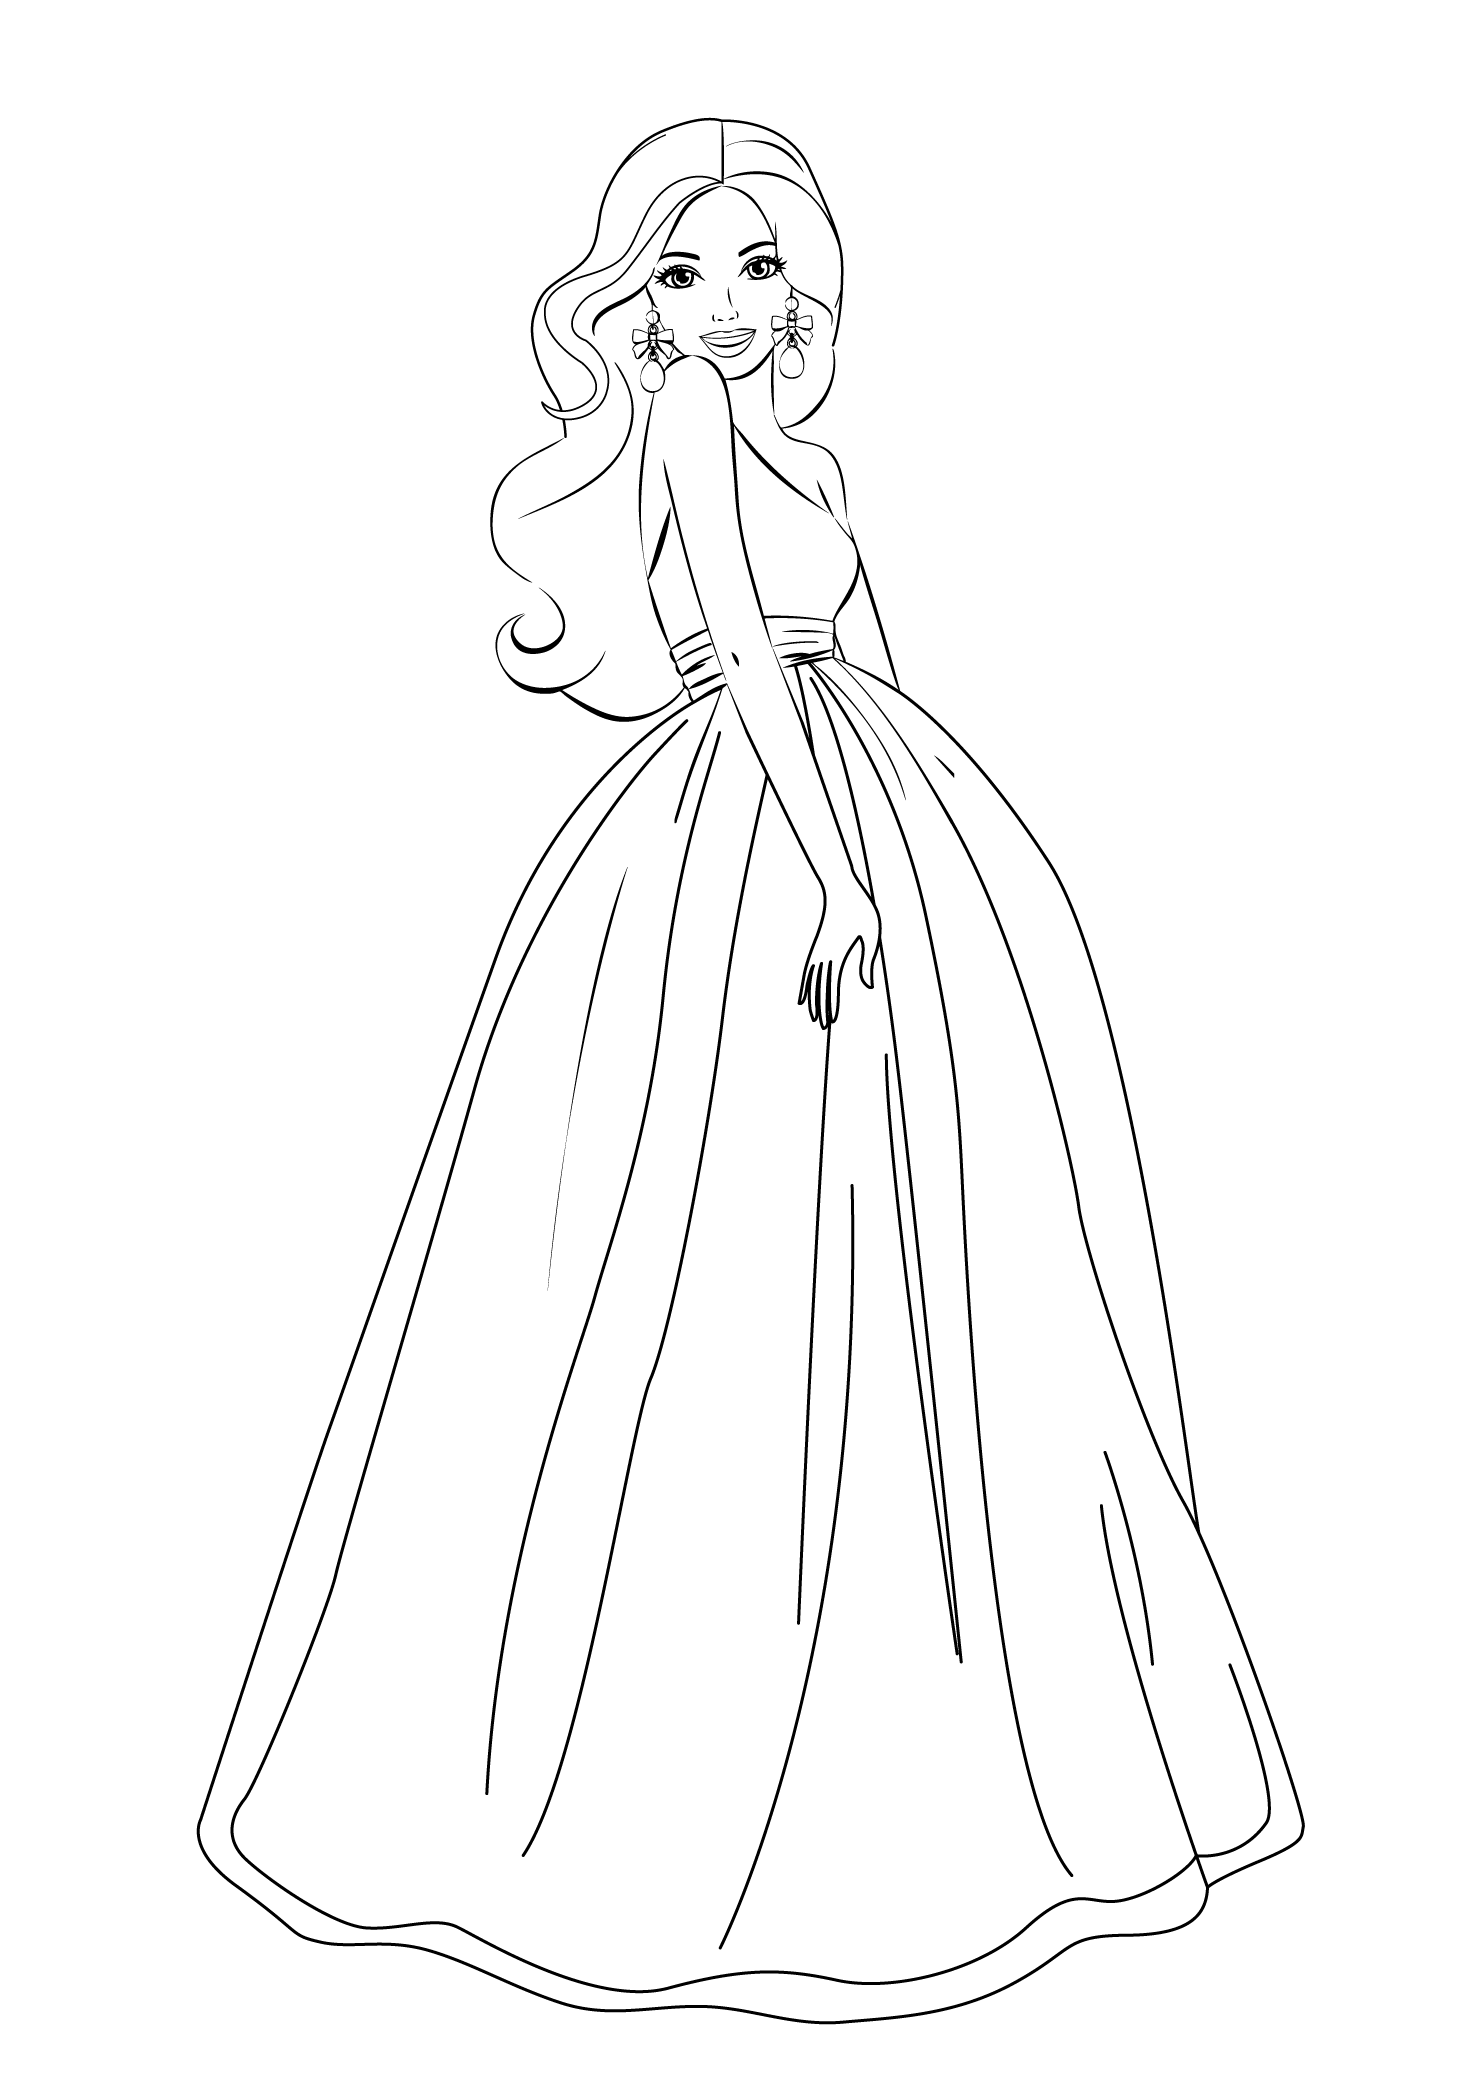 barbie coloring pages for free - photo#5